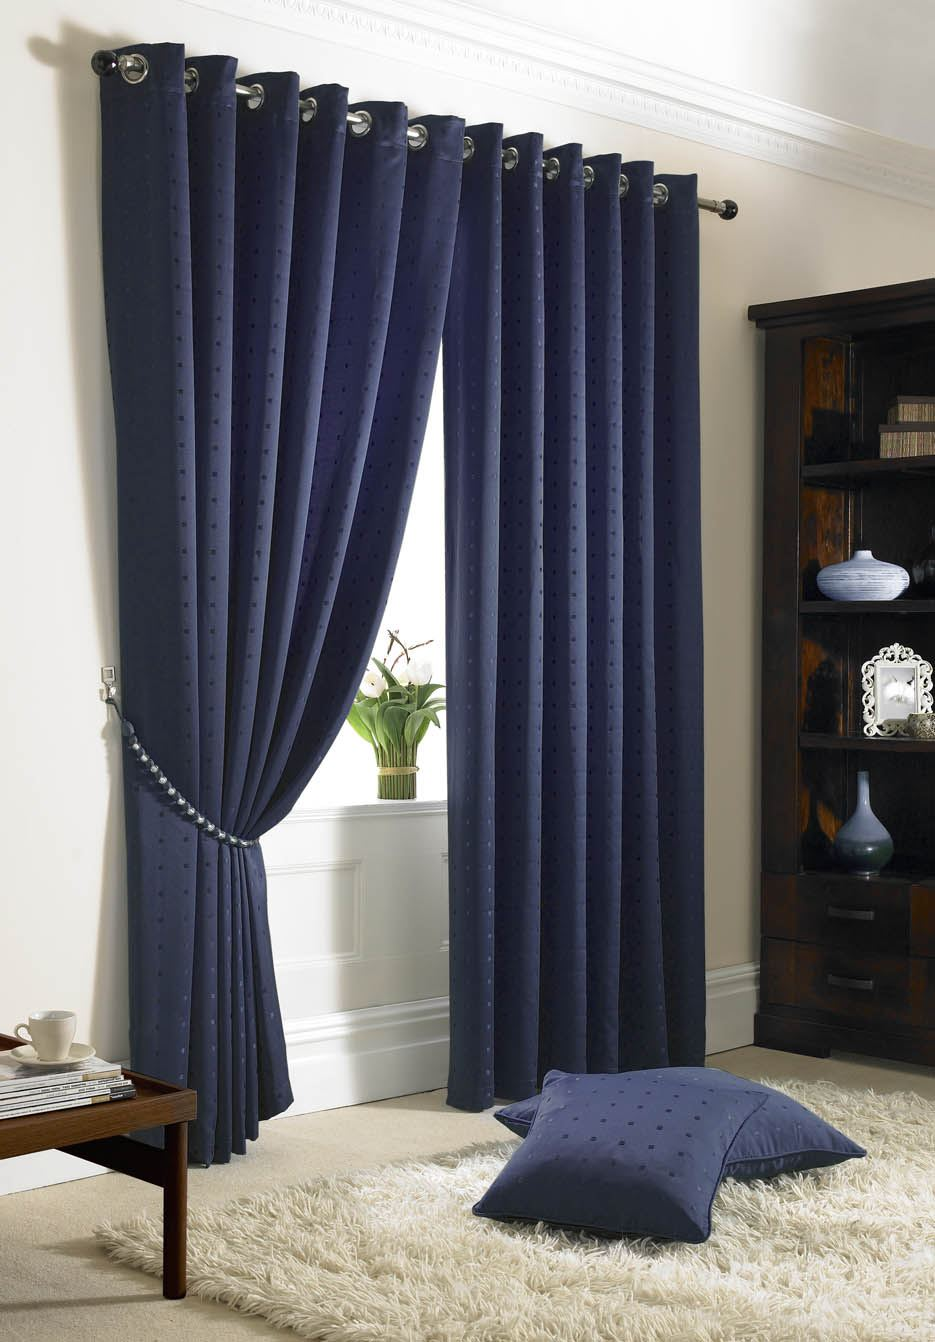 JACQUARD CHECK NAVY BLUE LINED RING TOP EYELET CURTAINS